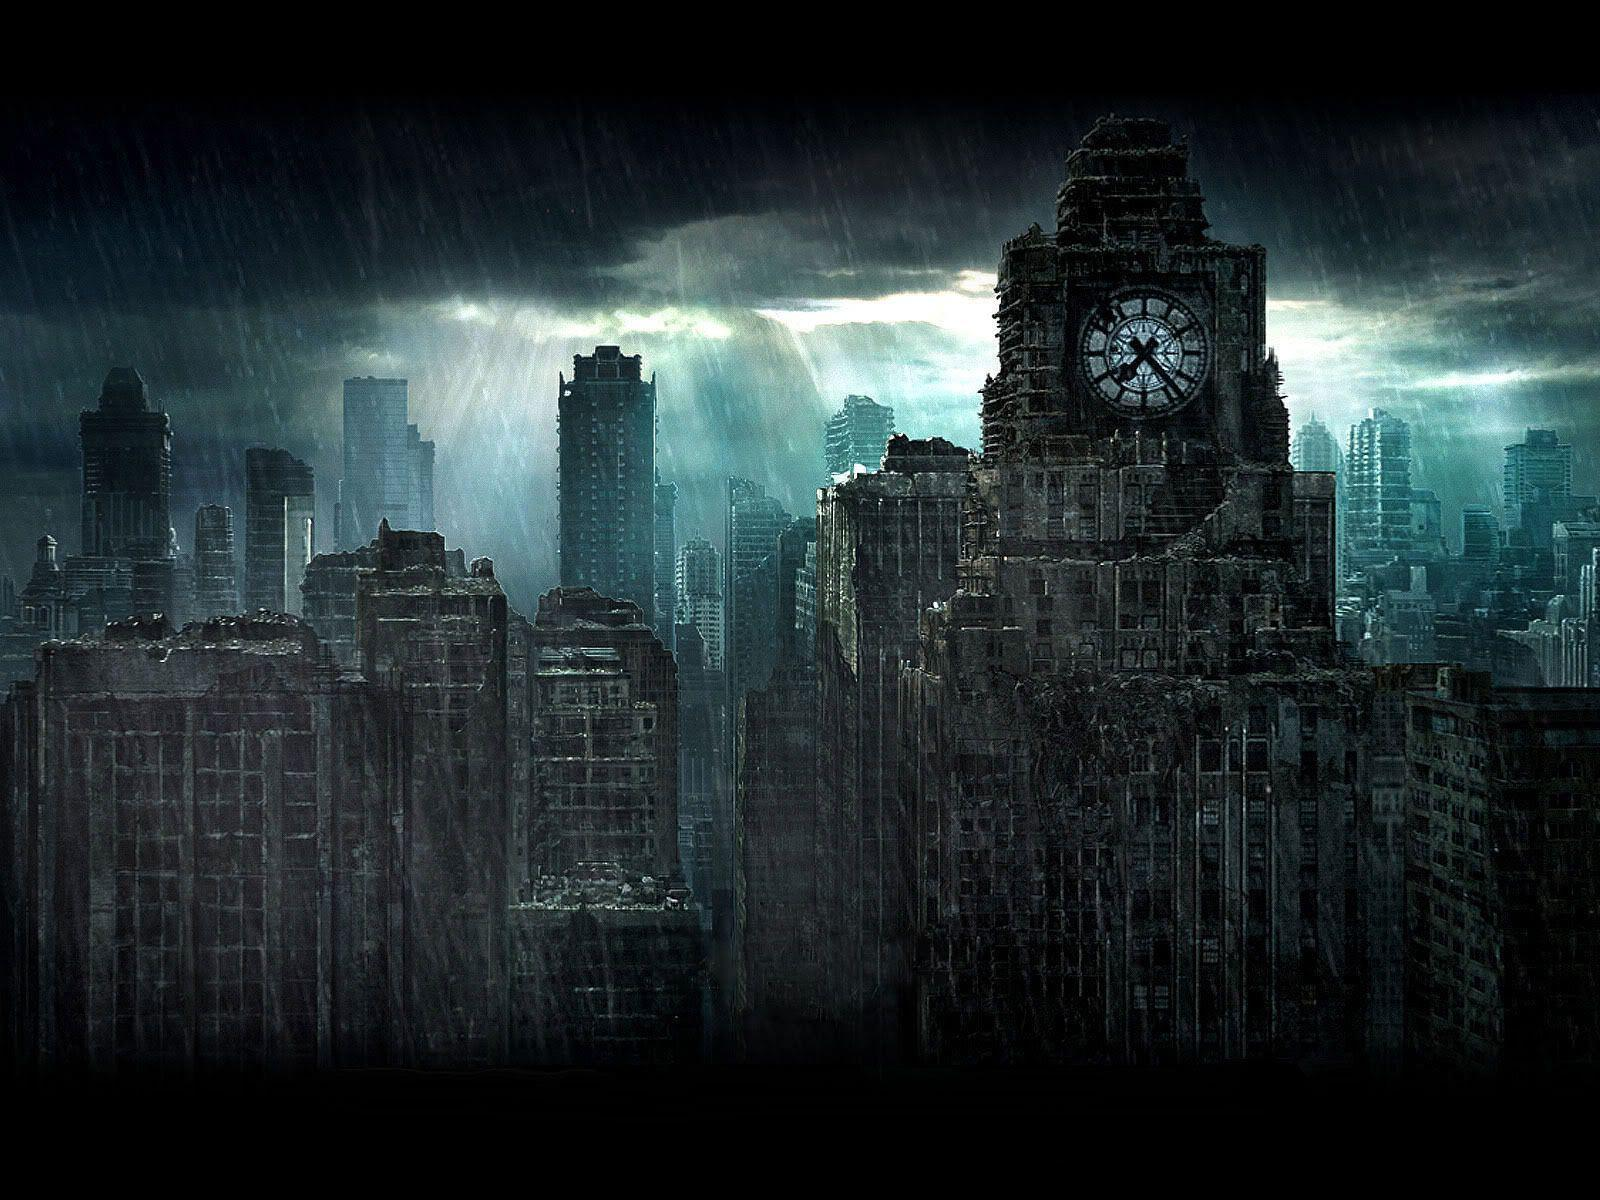 Gotham City Background Wallpaper 26945 Hi-Resolution | Best Free JPG